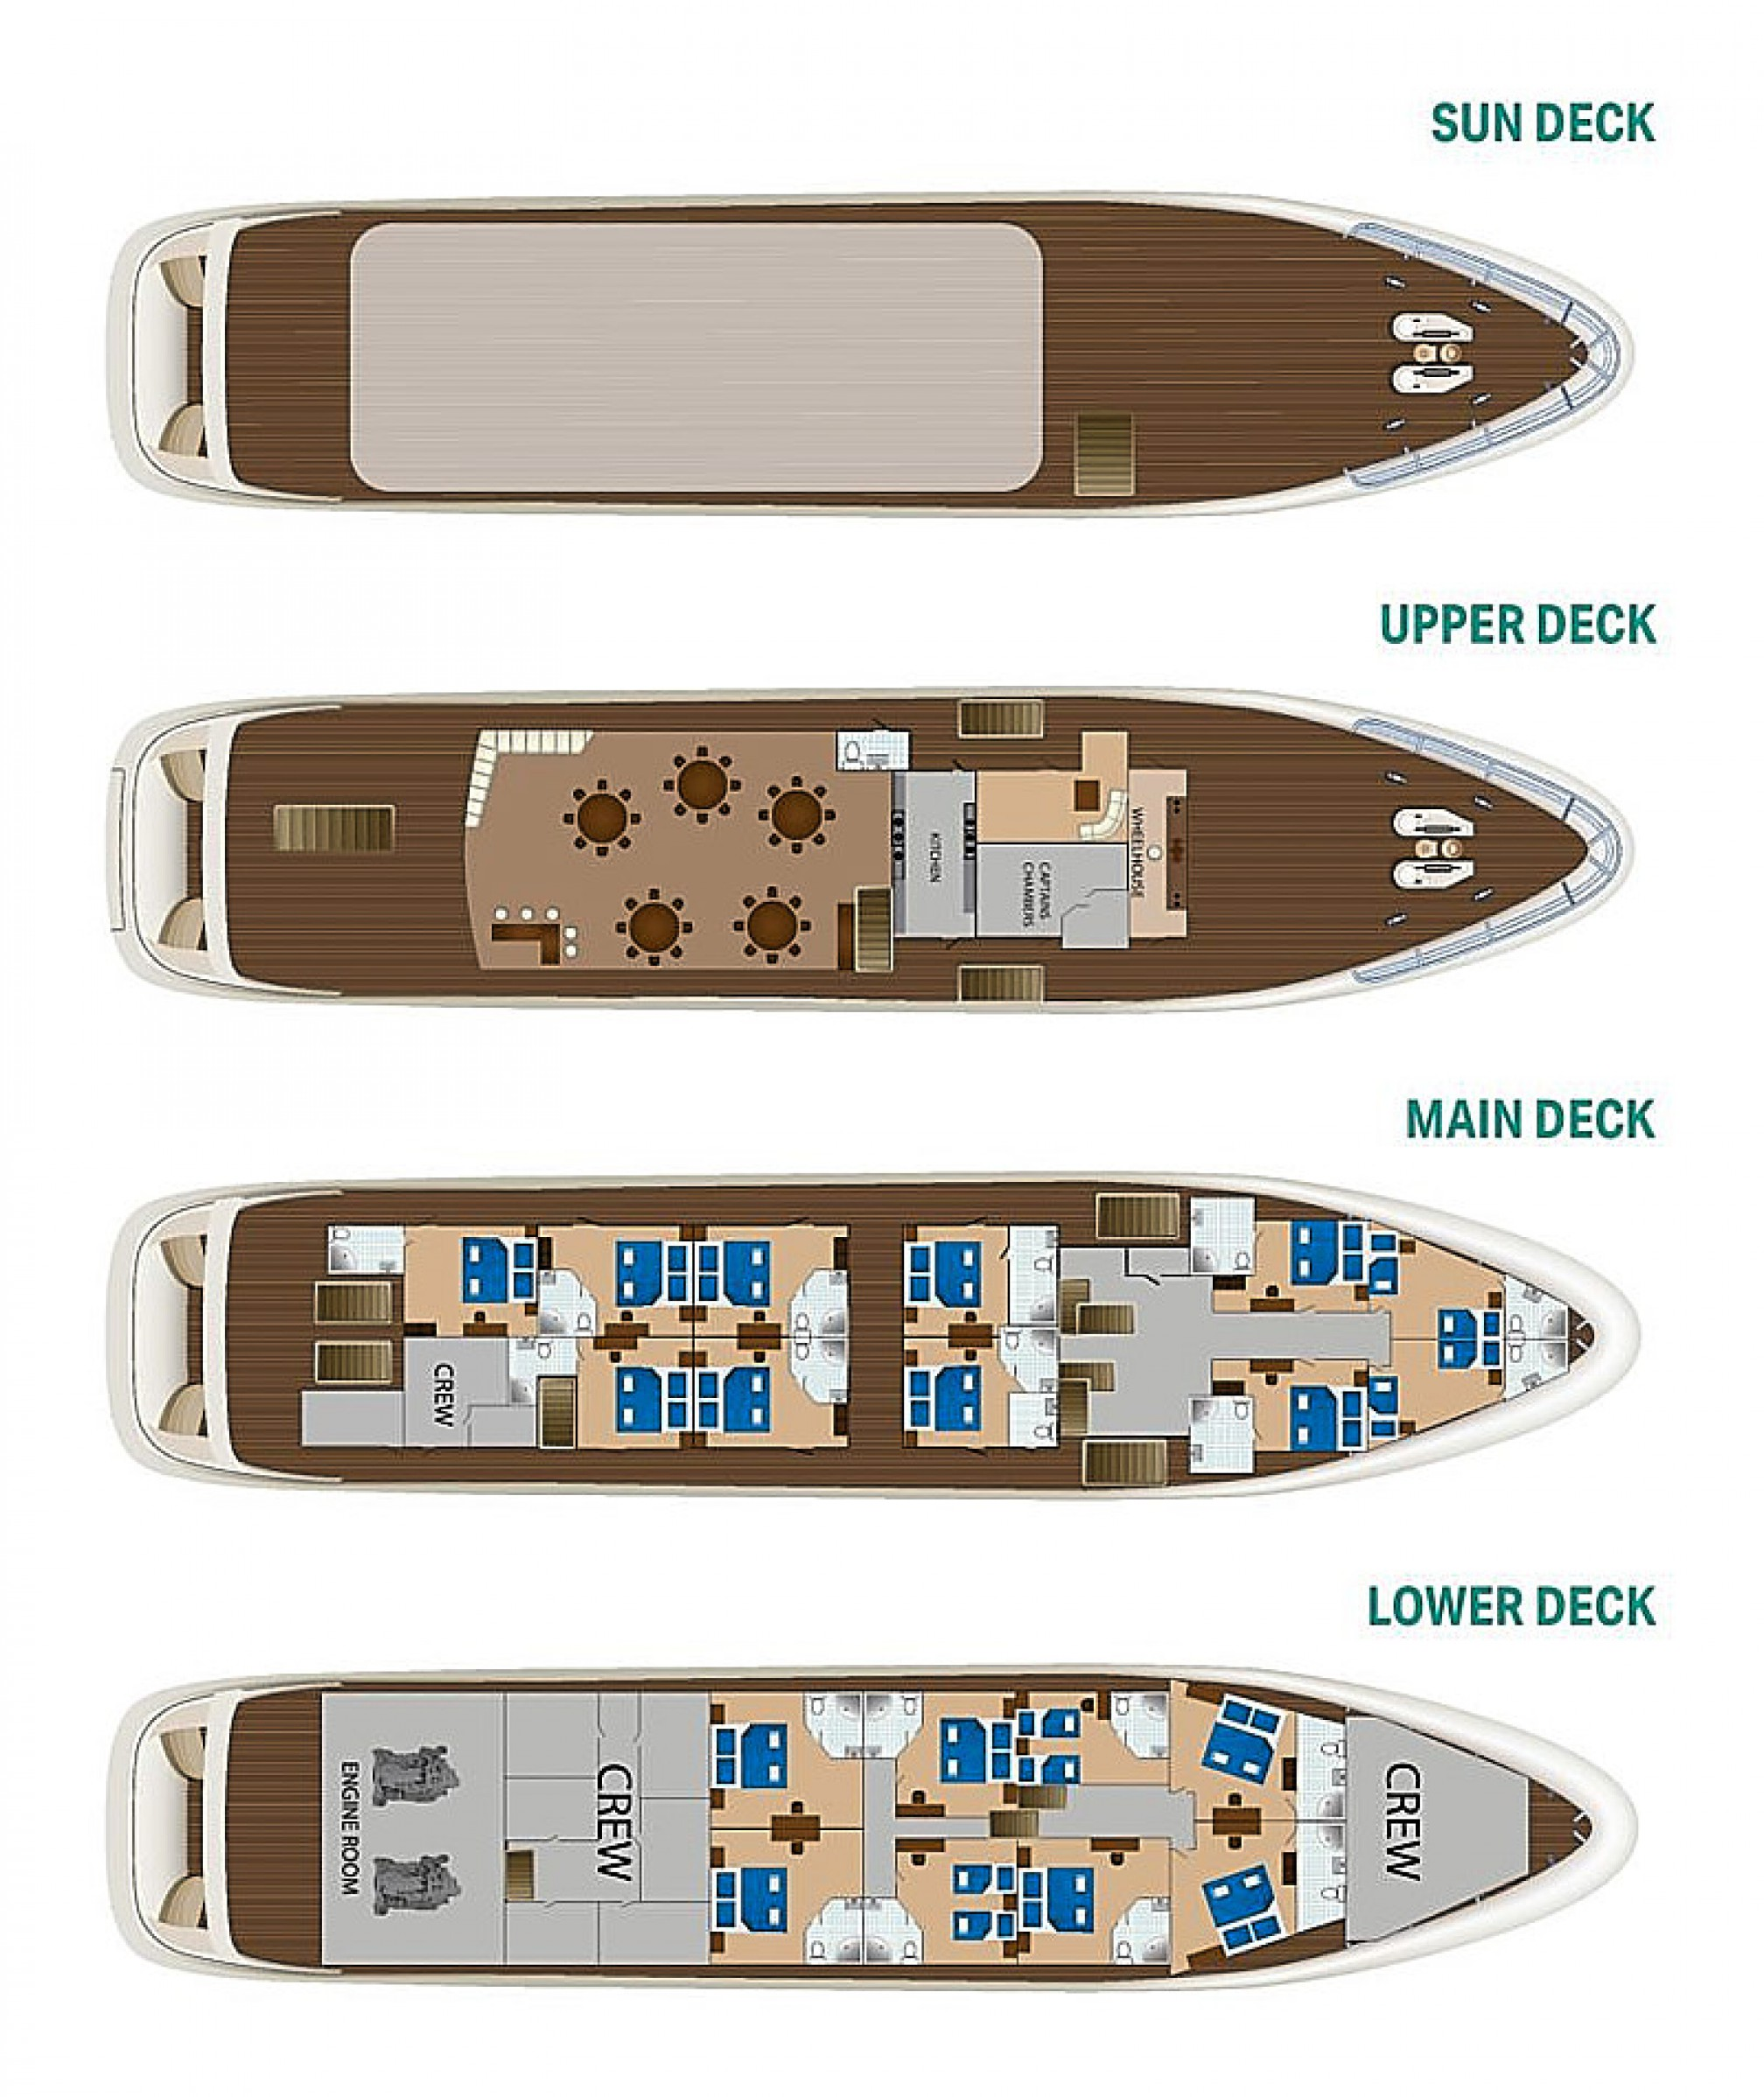 Rental yacht Cristal 38 pax layout